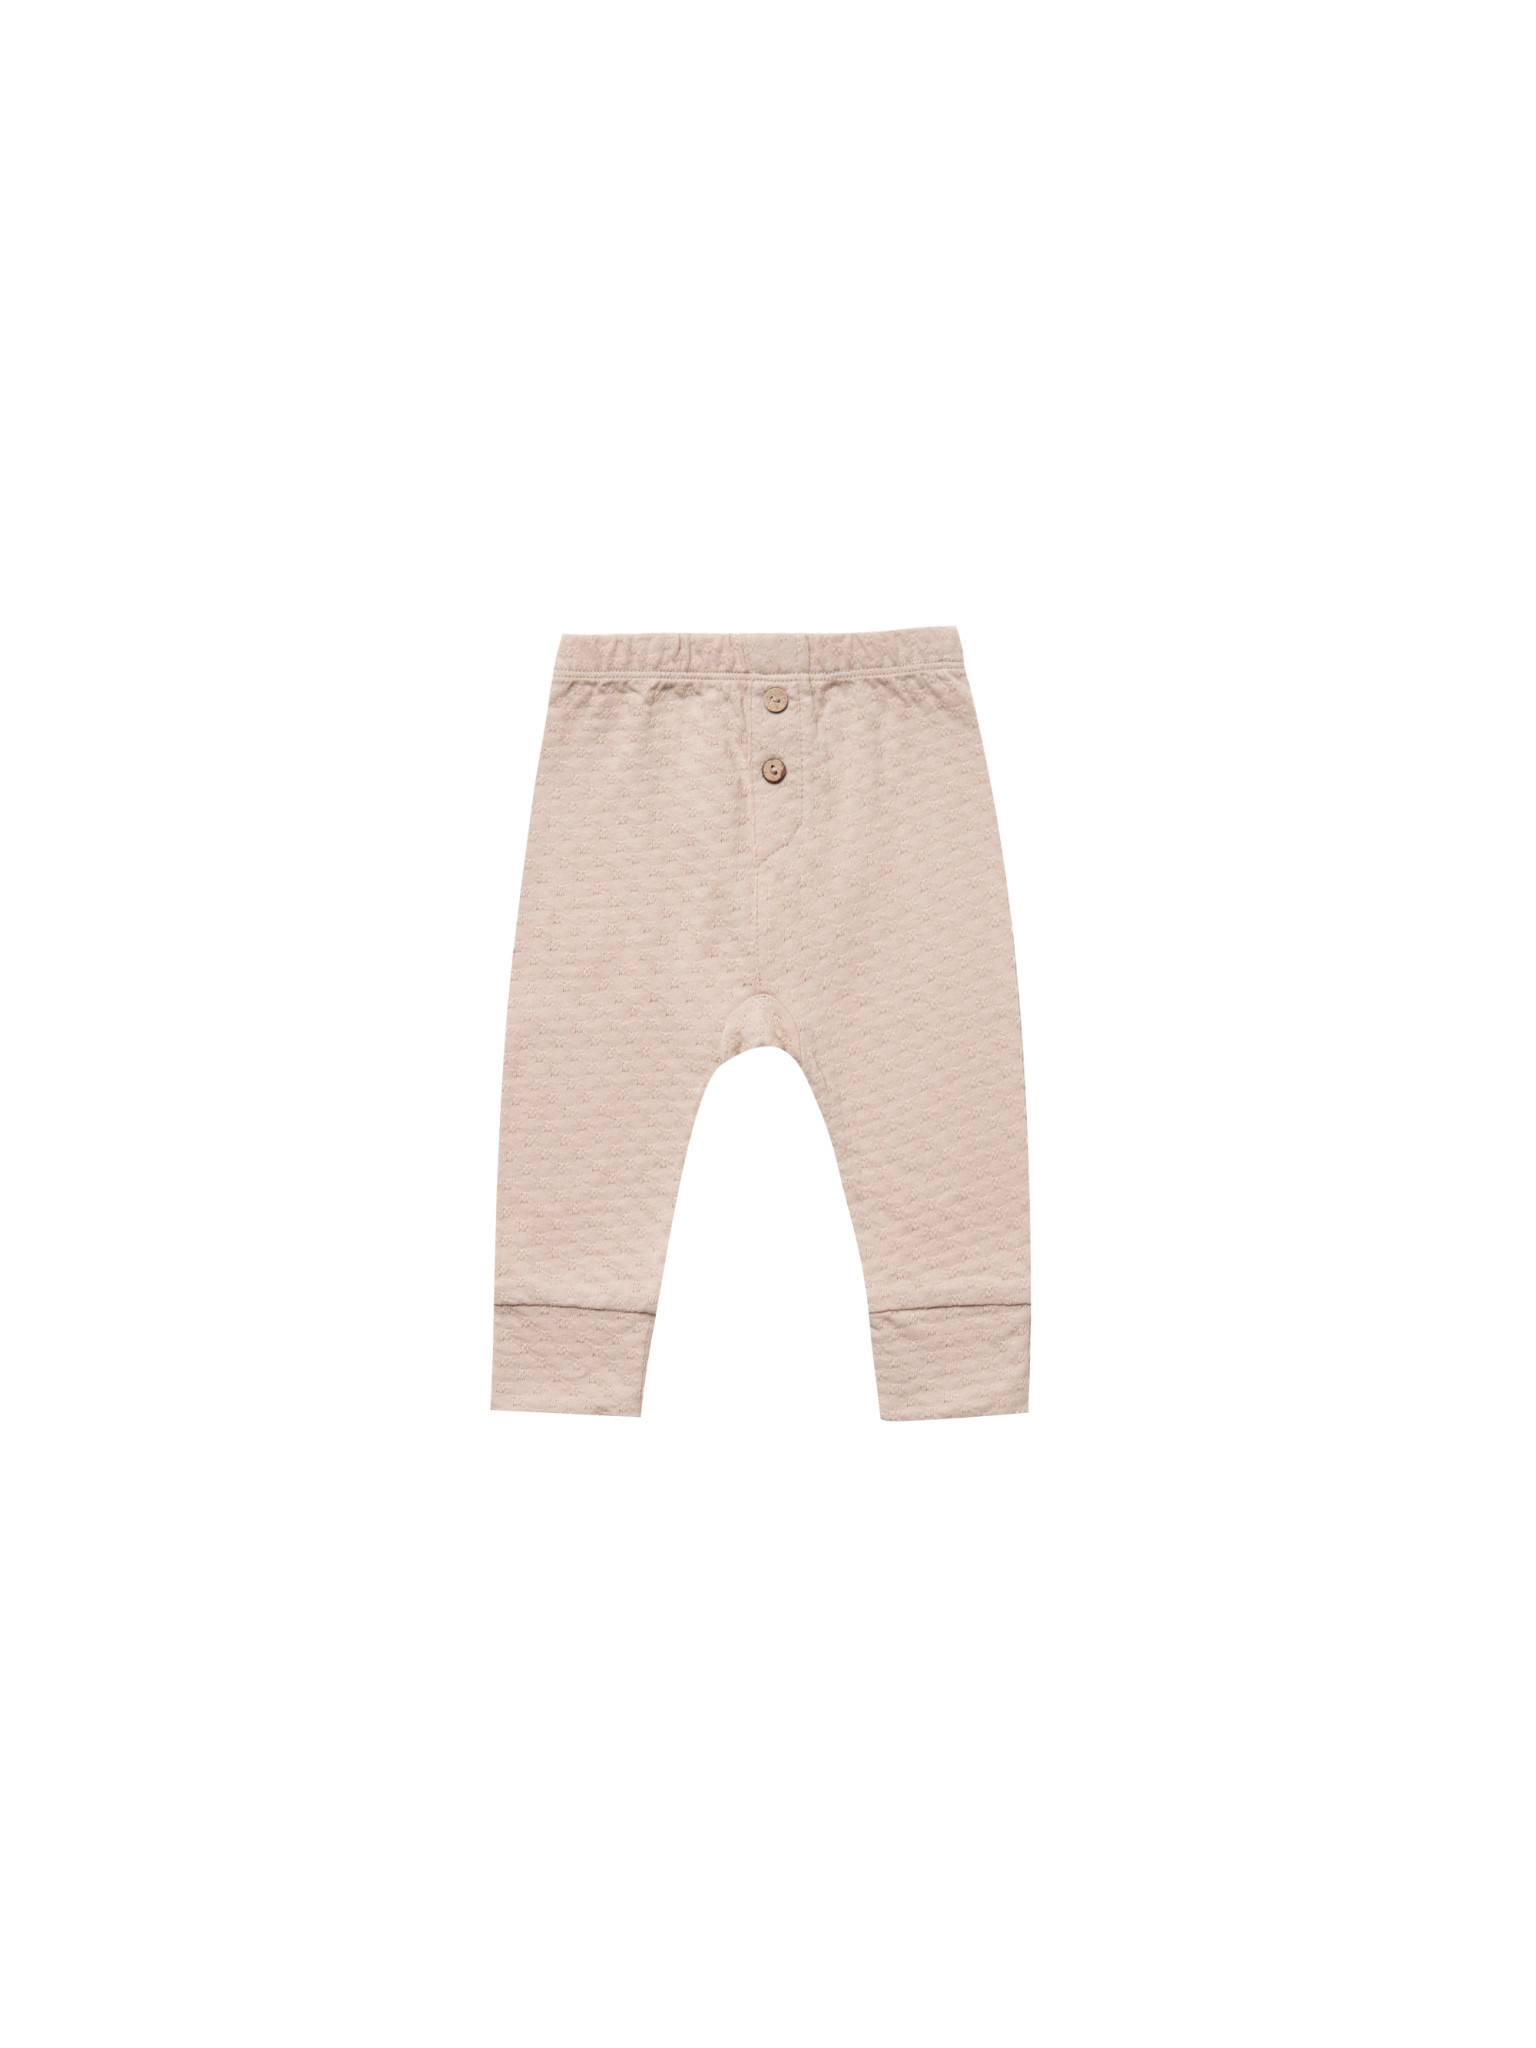 QUINCY MAE Organic Pointelle Pant